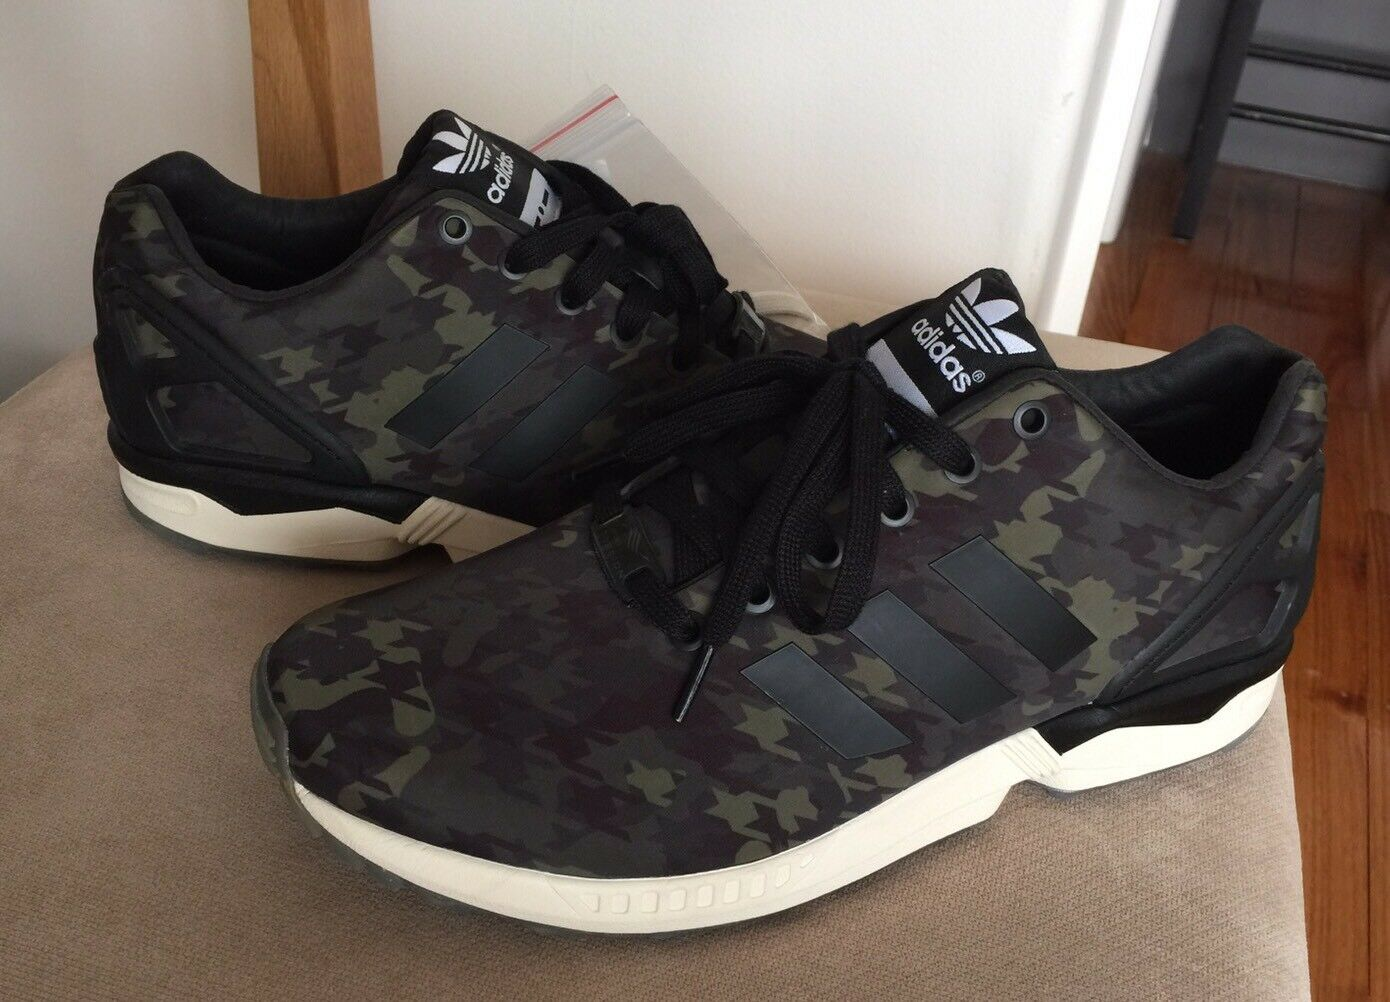 Adidas Zx Flux Italia Independent 9.5 noir Green Stan smith Ultra Boost Camo